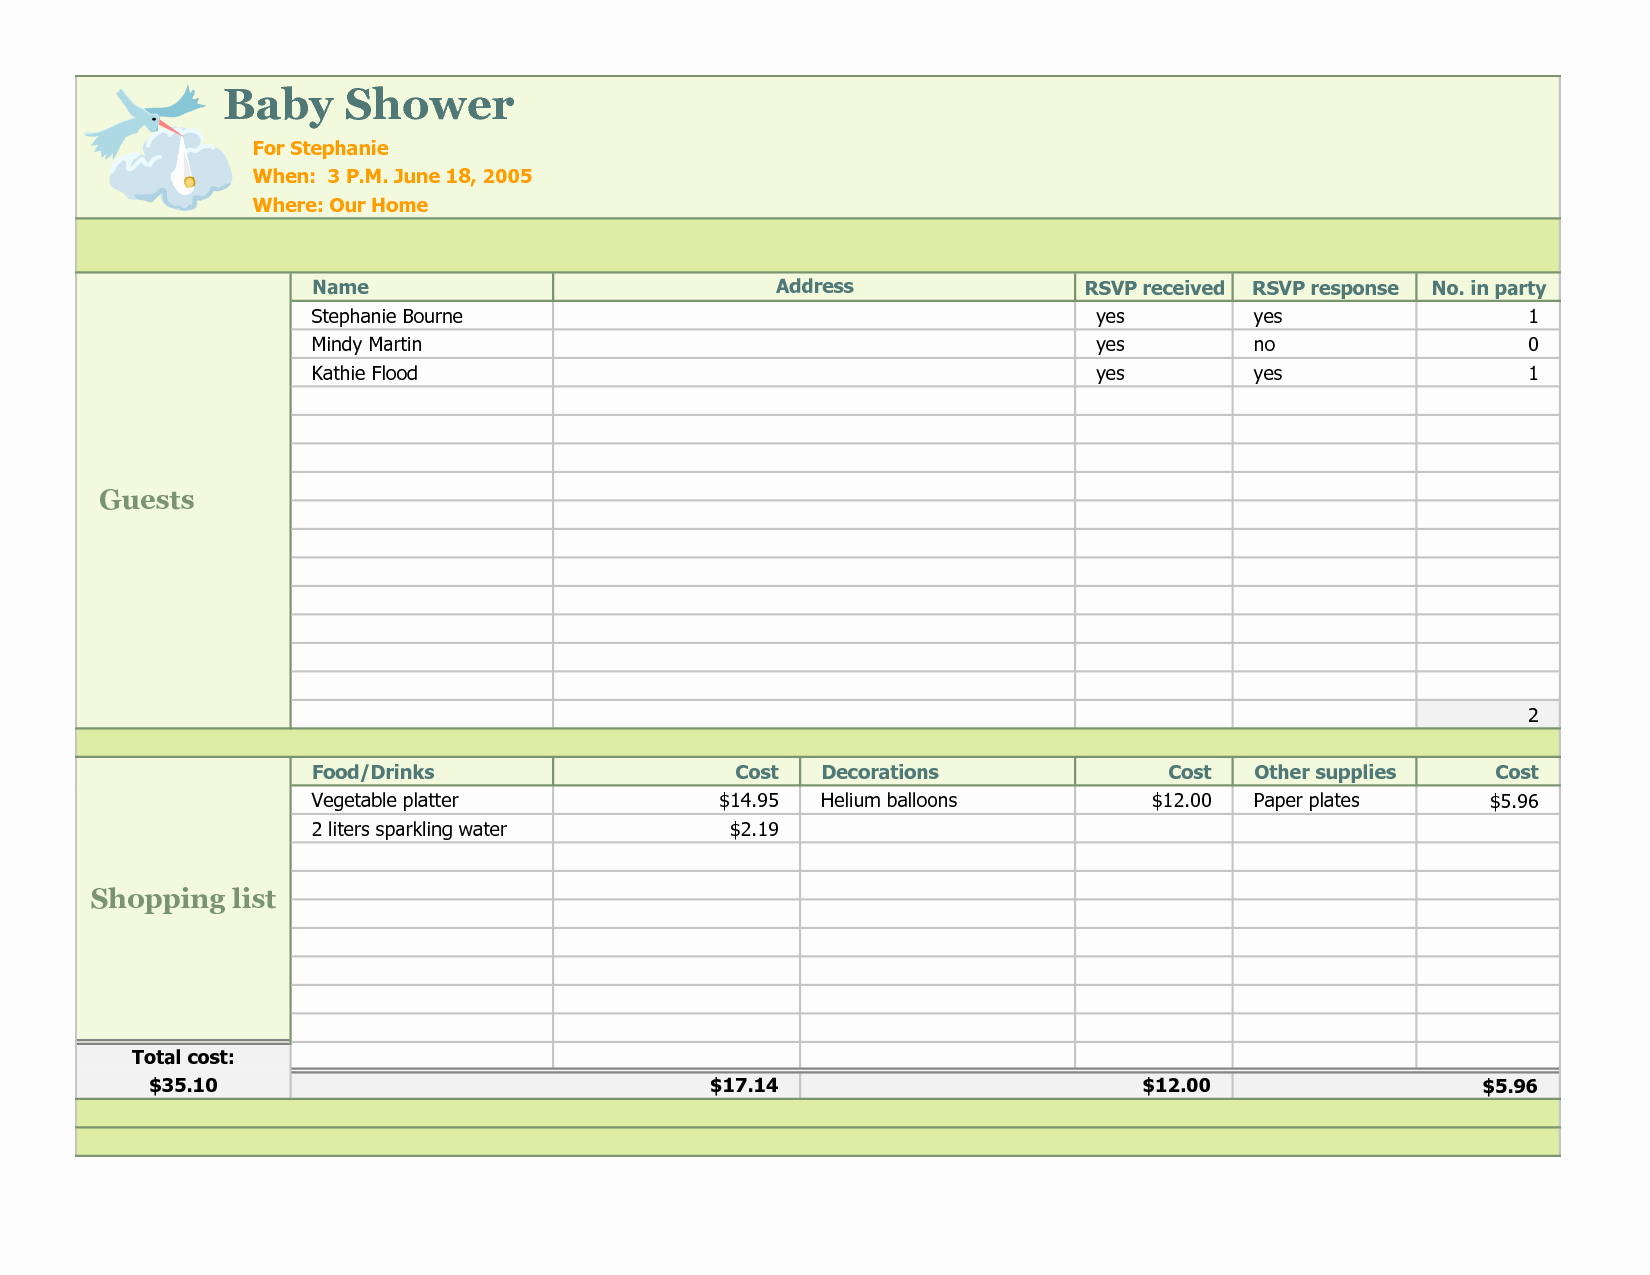 Baby Shower Gift List Template Luxury Baby Shower Registry Checklist Image